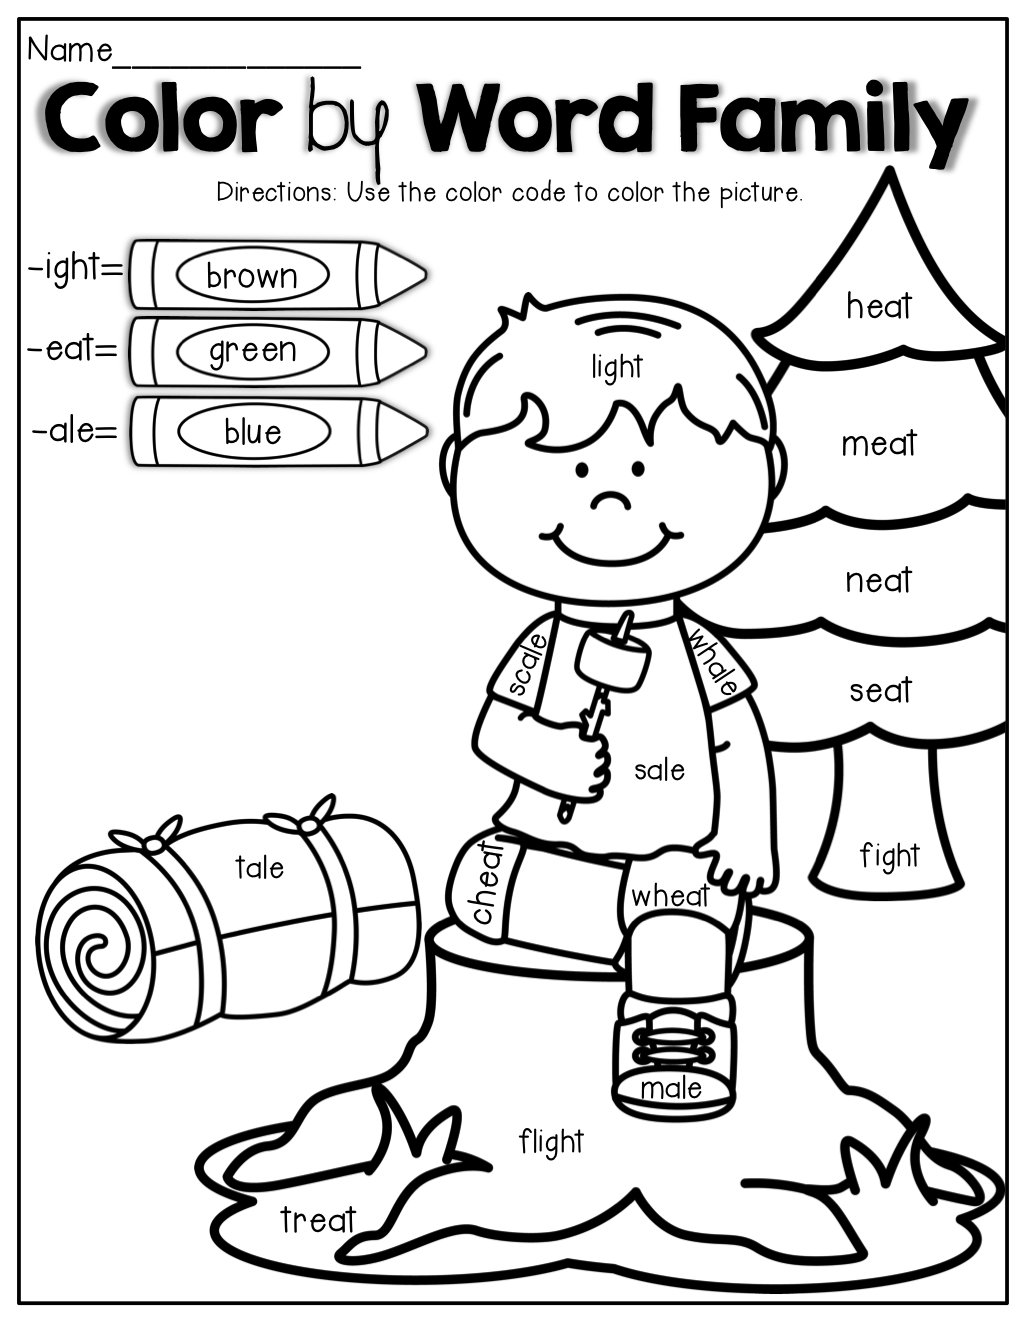 Color by Word Family KinderLand Collaborative – Word Family Worksheets for Kindergarten